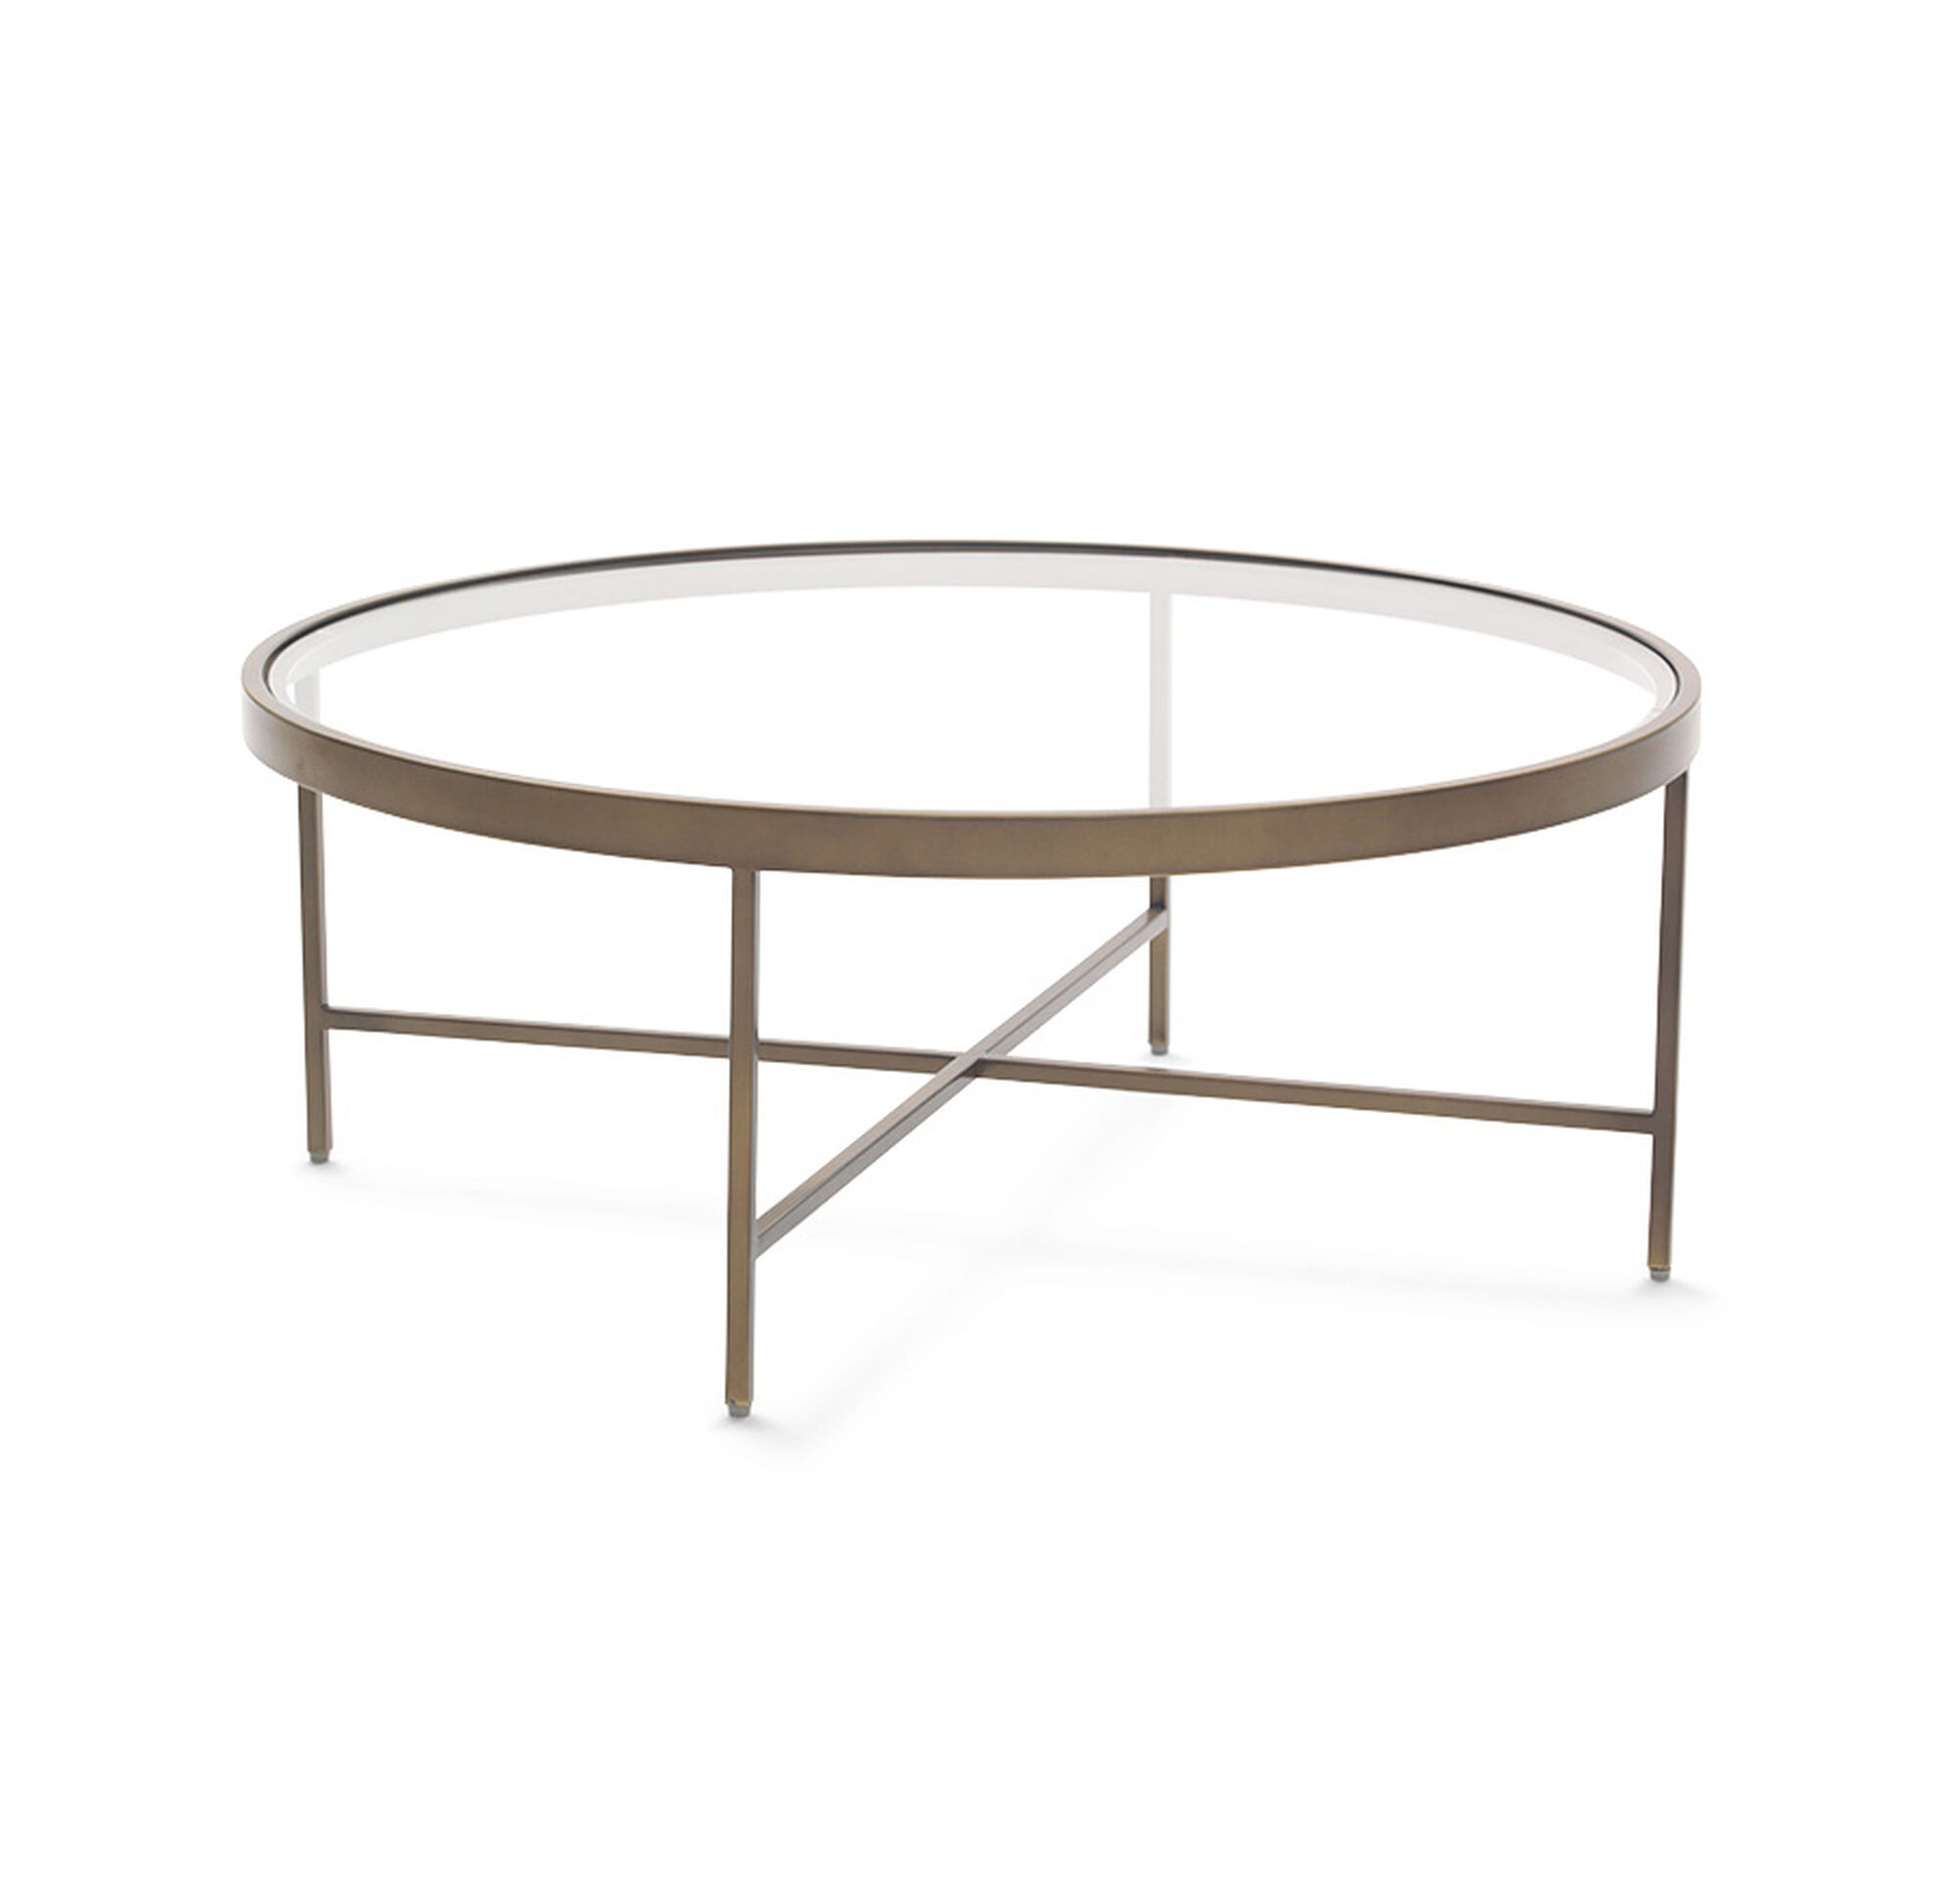 Vienna antique brass round cocktail table Round cocktail table